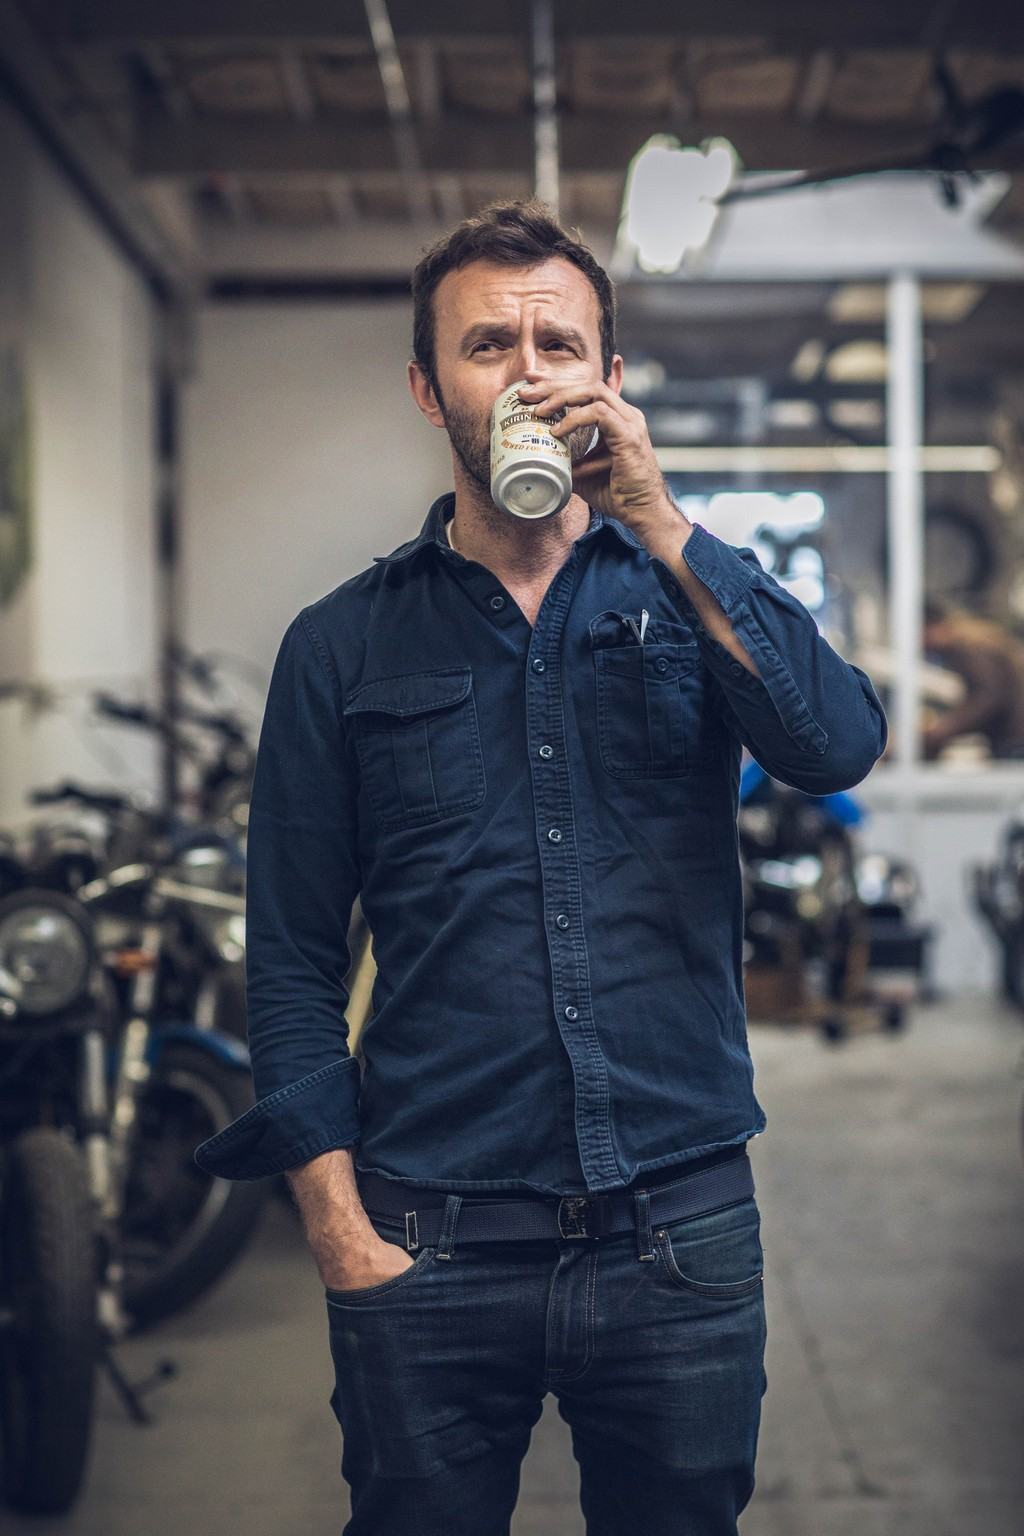 Hugo Eccles from San Francisco's Untitled Motorcycles with a beer